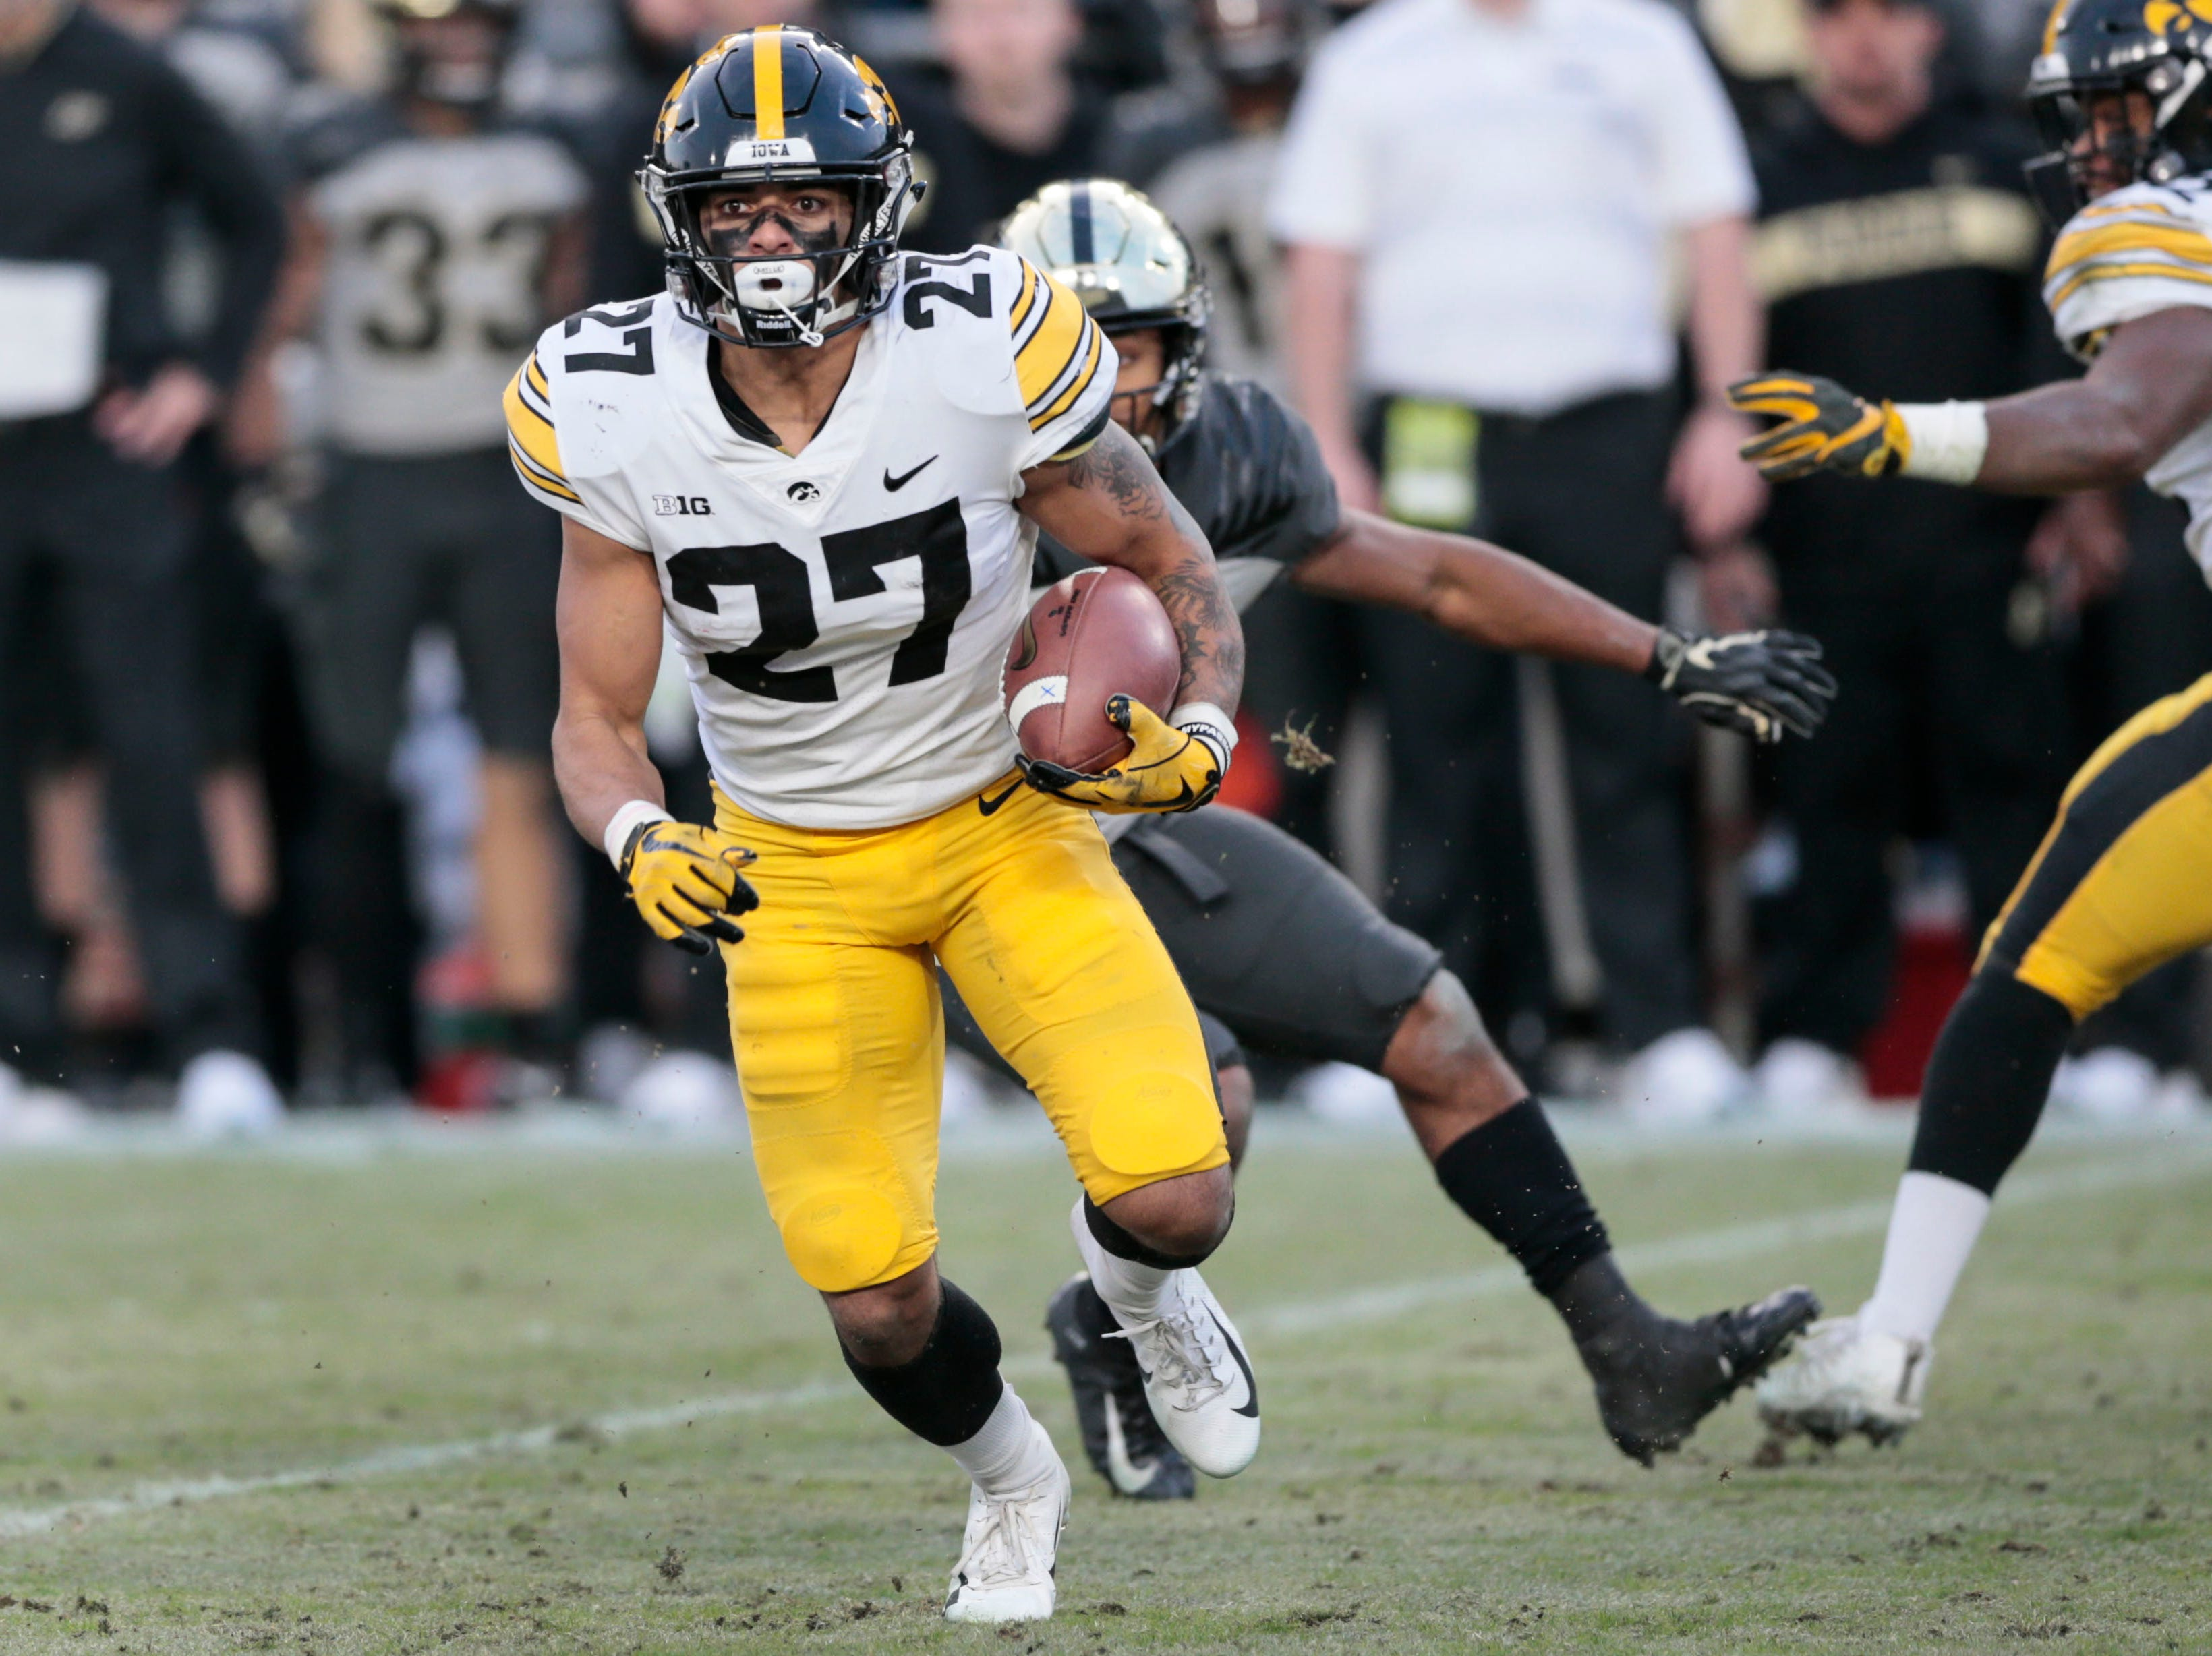 Iowa defensive back Amani Hooker (27) runs with the ball after intercepting it while playing Purdue in the second half of an NCAA college football game in West Lafayette, Ind., Saturday, Nov. 3, 2018.